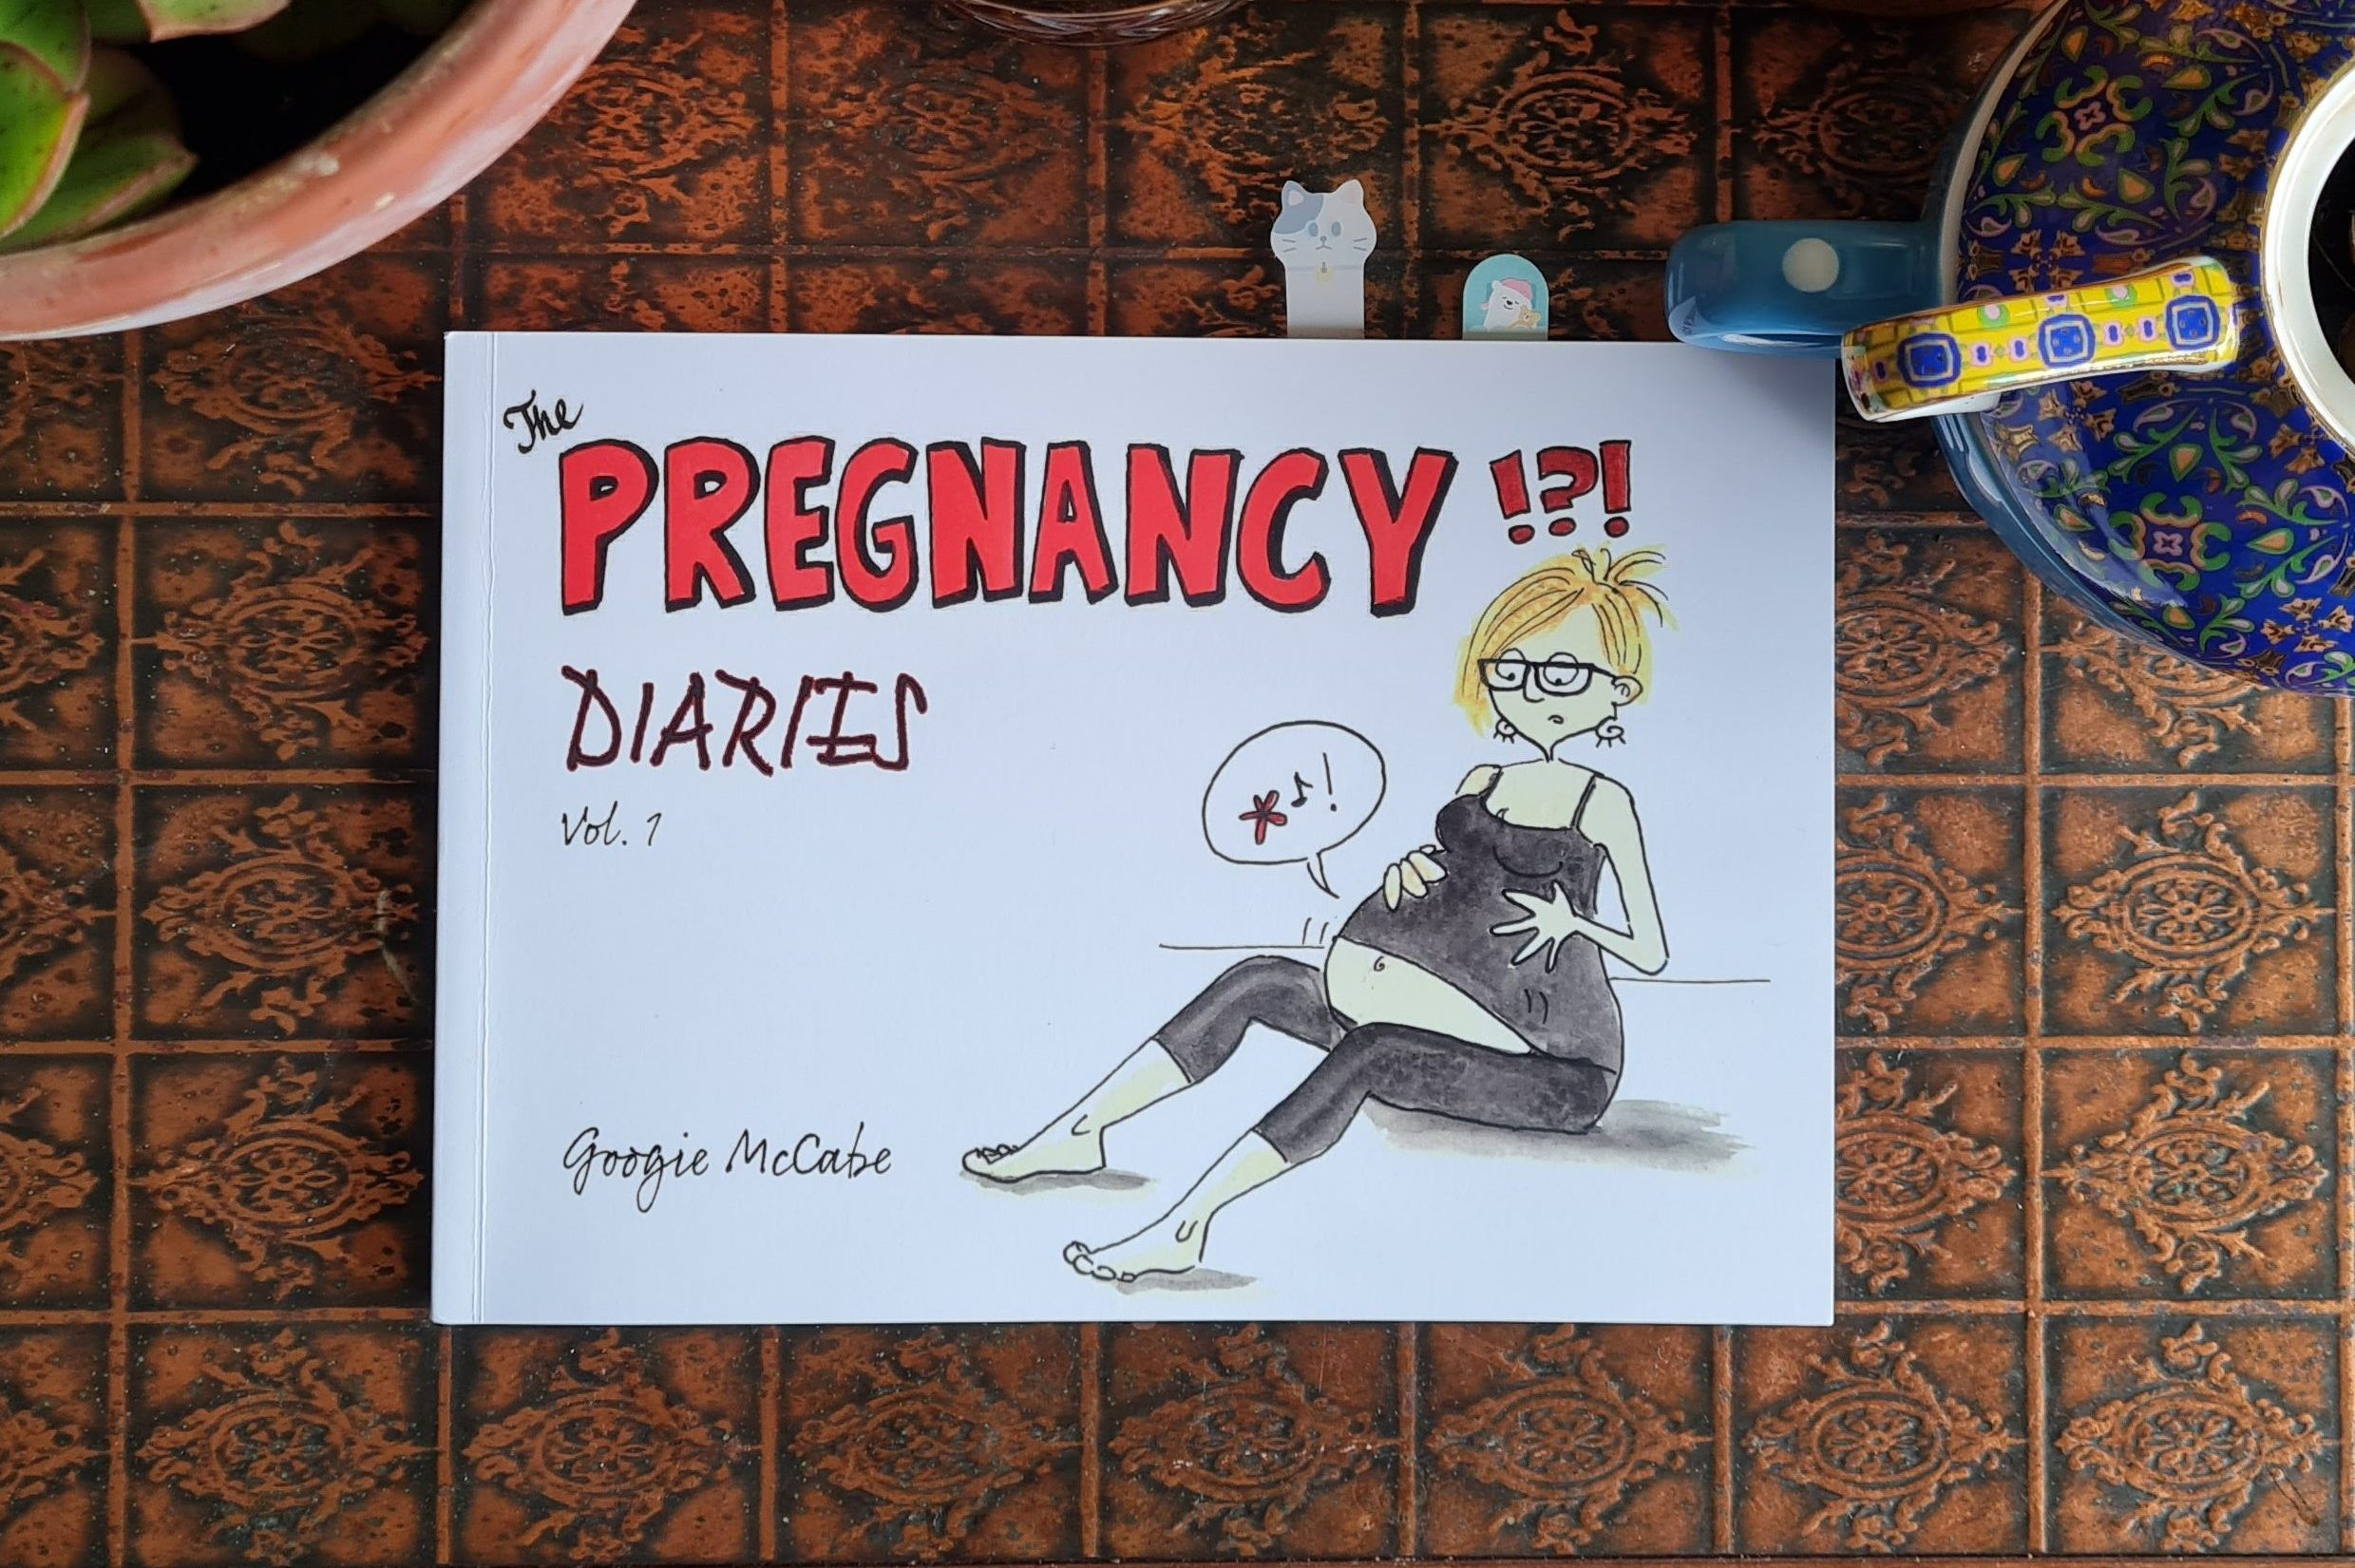 Book Review: The Pregnancy Diaries Vol. 1 by Googie McCabe